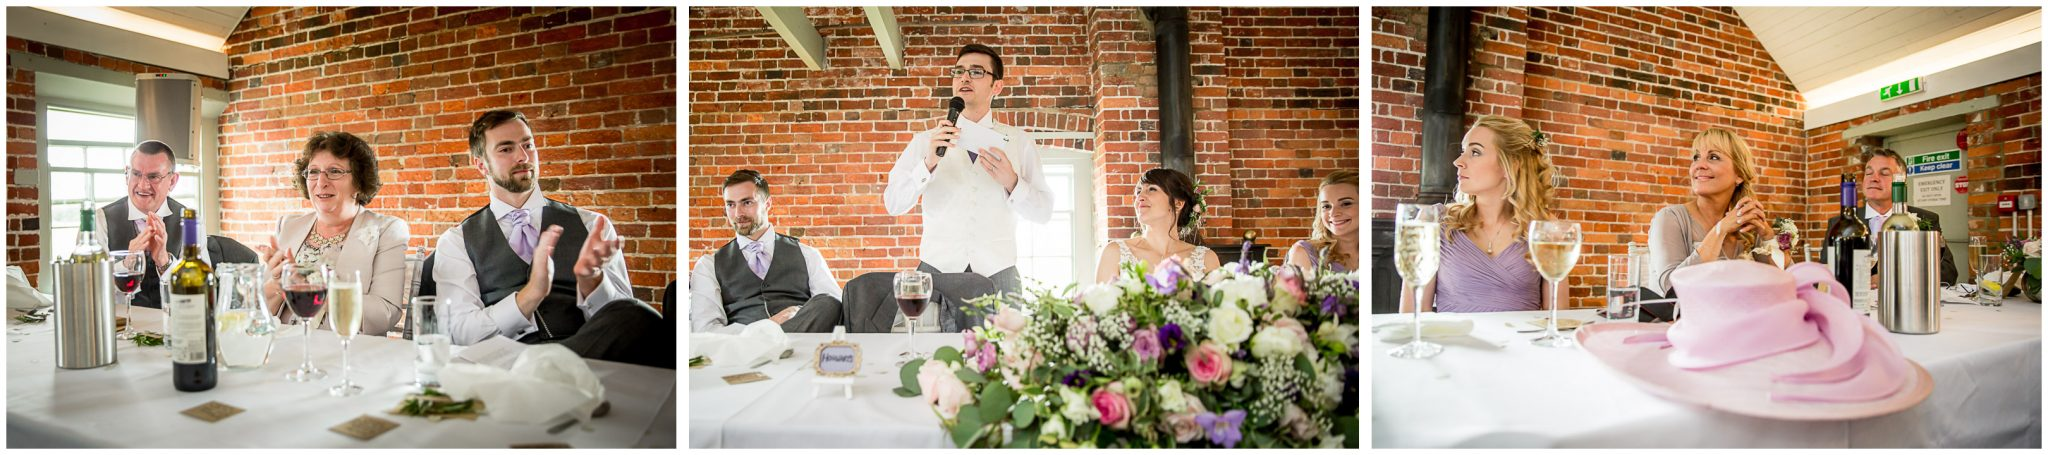 Sopley Mill wedding photography top table applaud's groom's speech